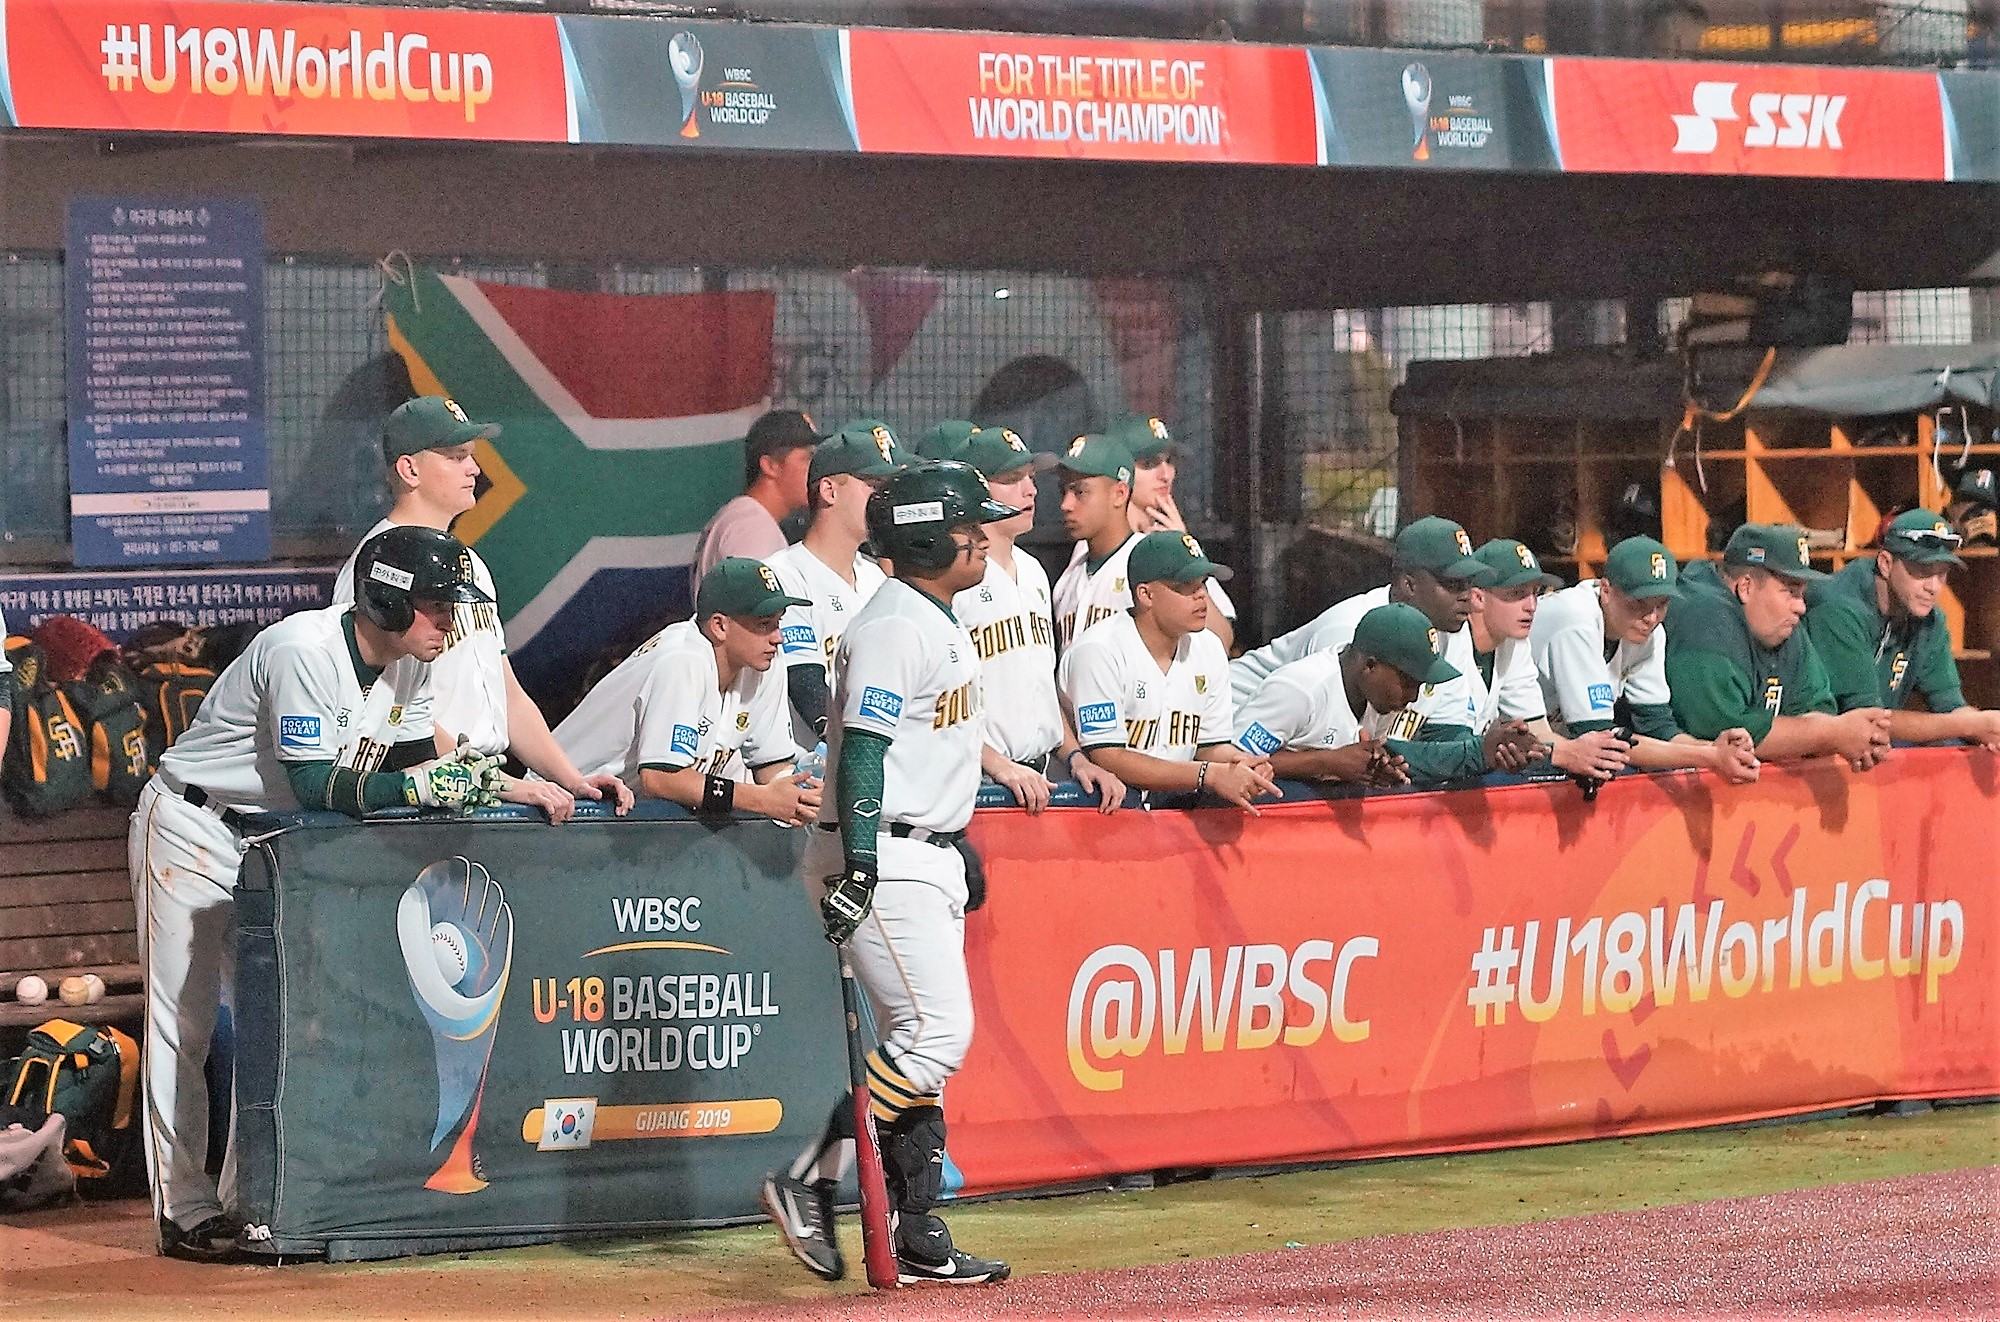 South Africa dugout before the game